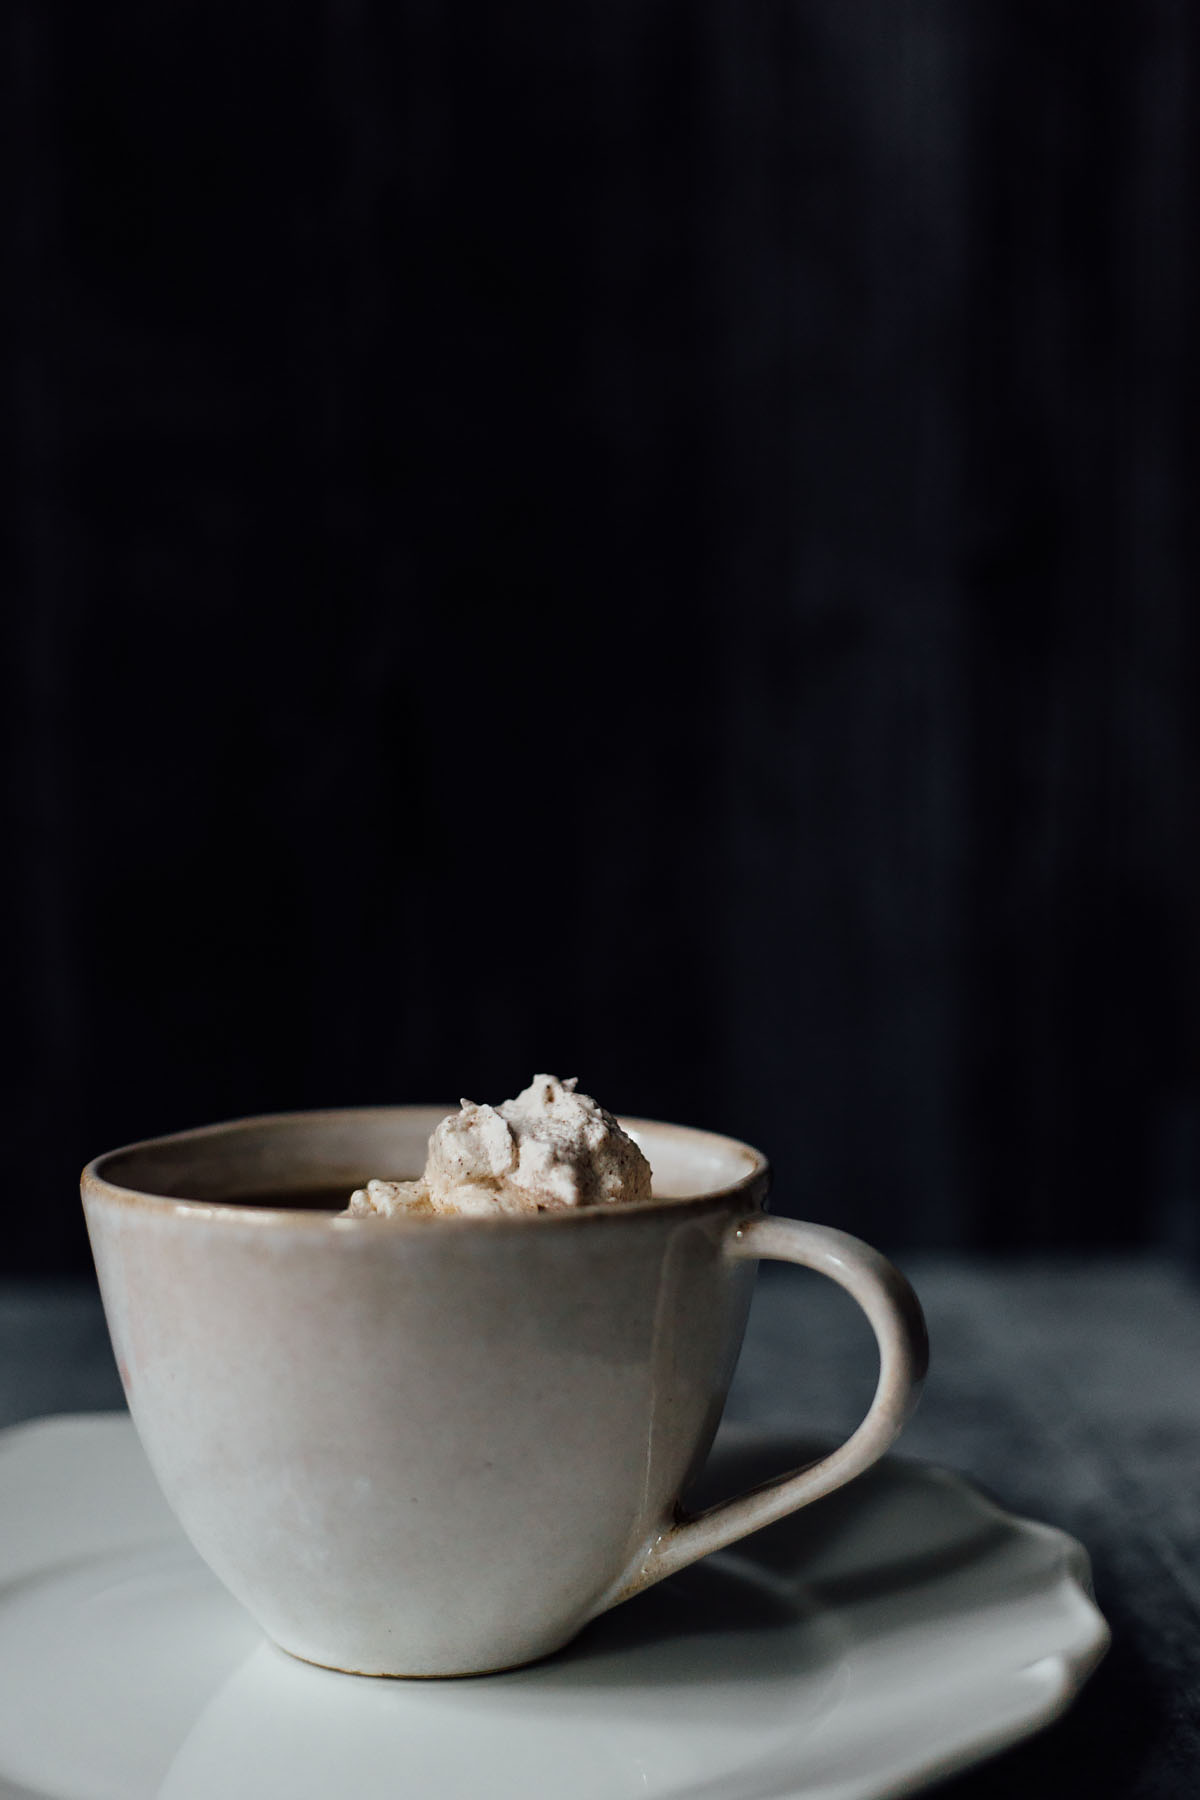 homemade cinnamon whipped cream in a coffee cup